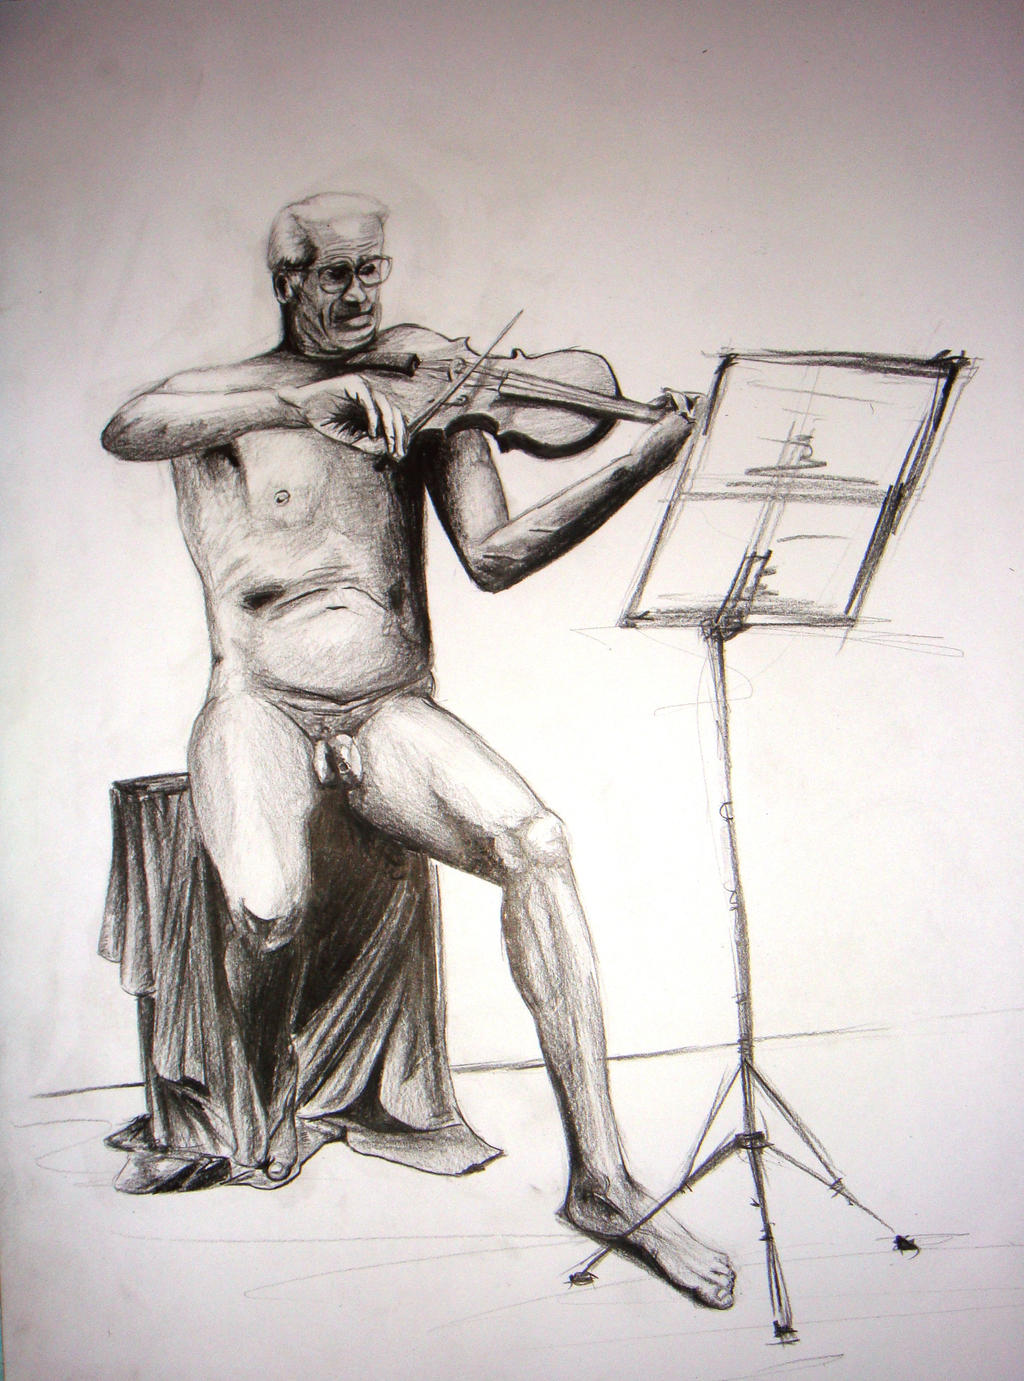 Violin 2012 - Pencil Sketch by Balanyuk on DeviantArt